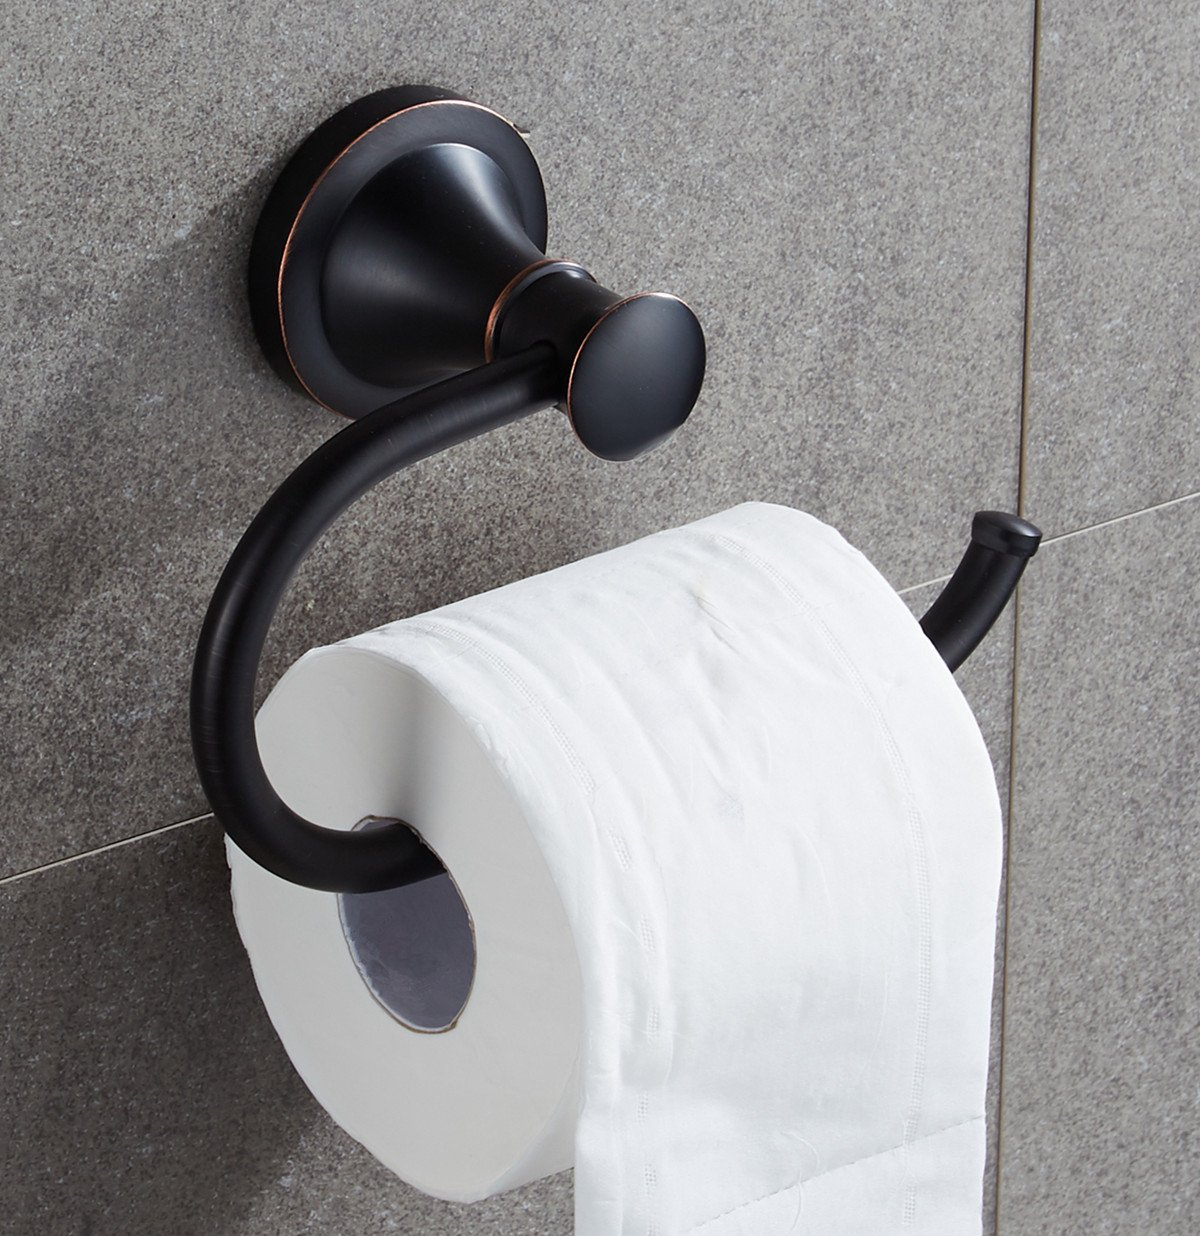 Ello&Allo Oil Rubbed Bronze Toilet Paper Holder,Bronze Toilet Tissue Holder Bathroom Accessories by Ello&Allo (Image #2)